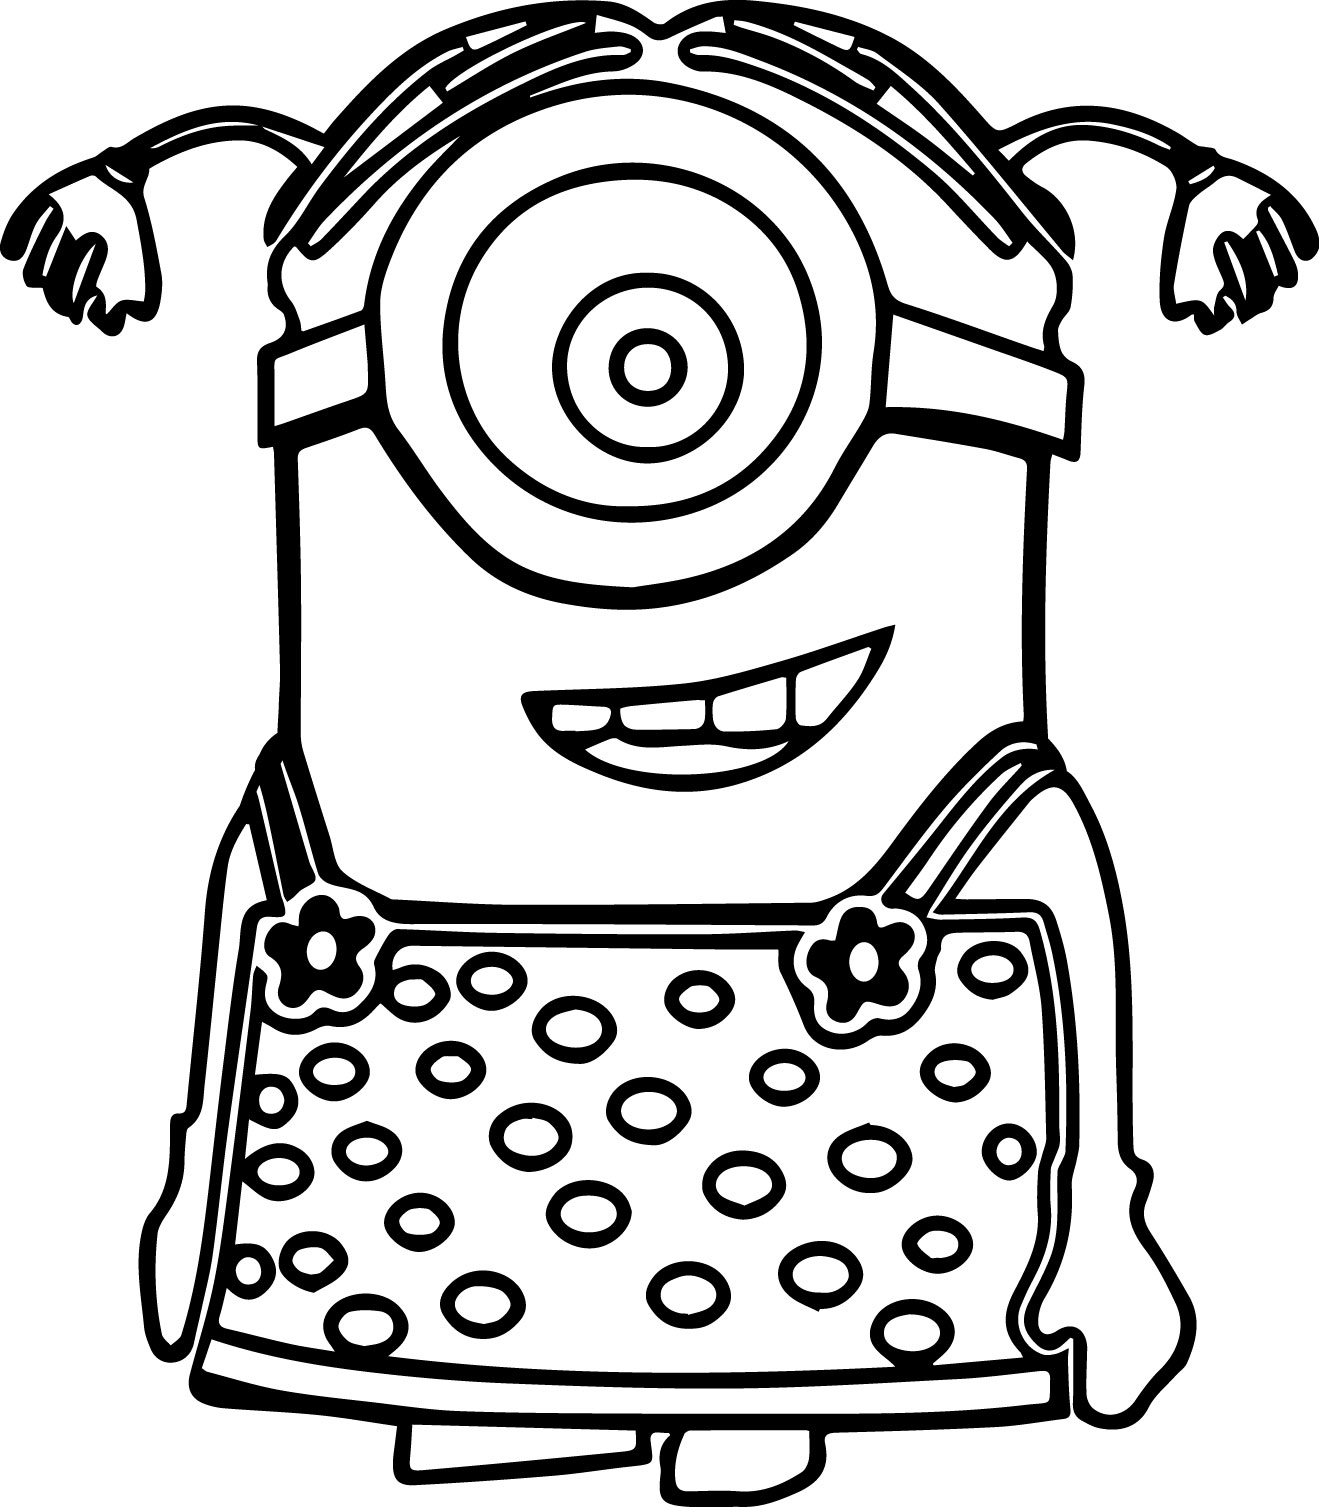 coloring pictures of minions minion coloring pages fotolipcom rich image and wallpaper of coloring minions pictures